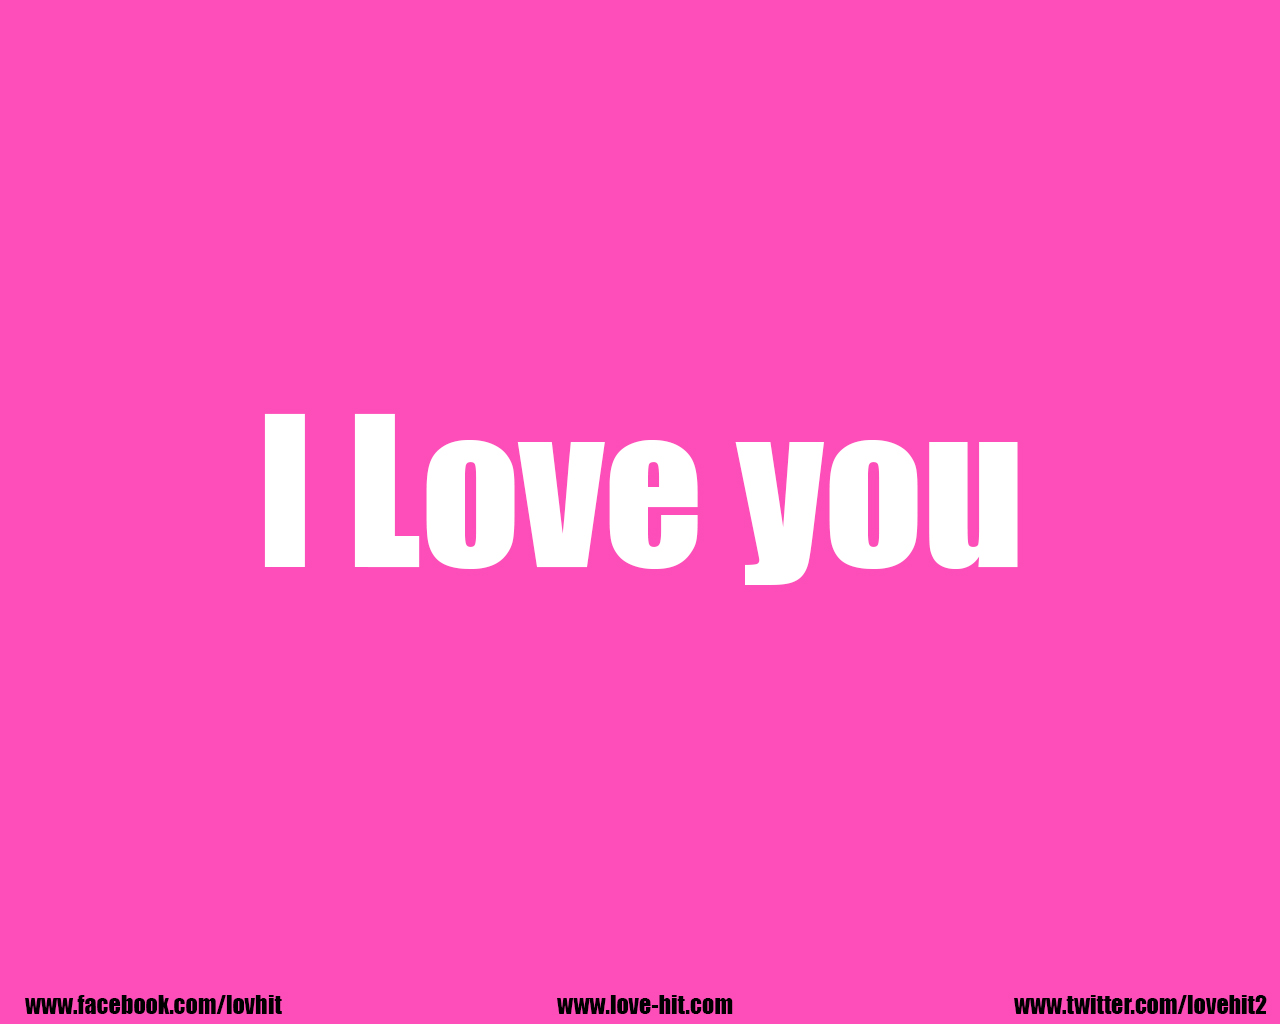 I Love you pink